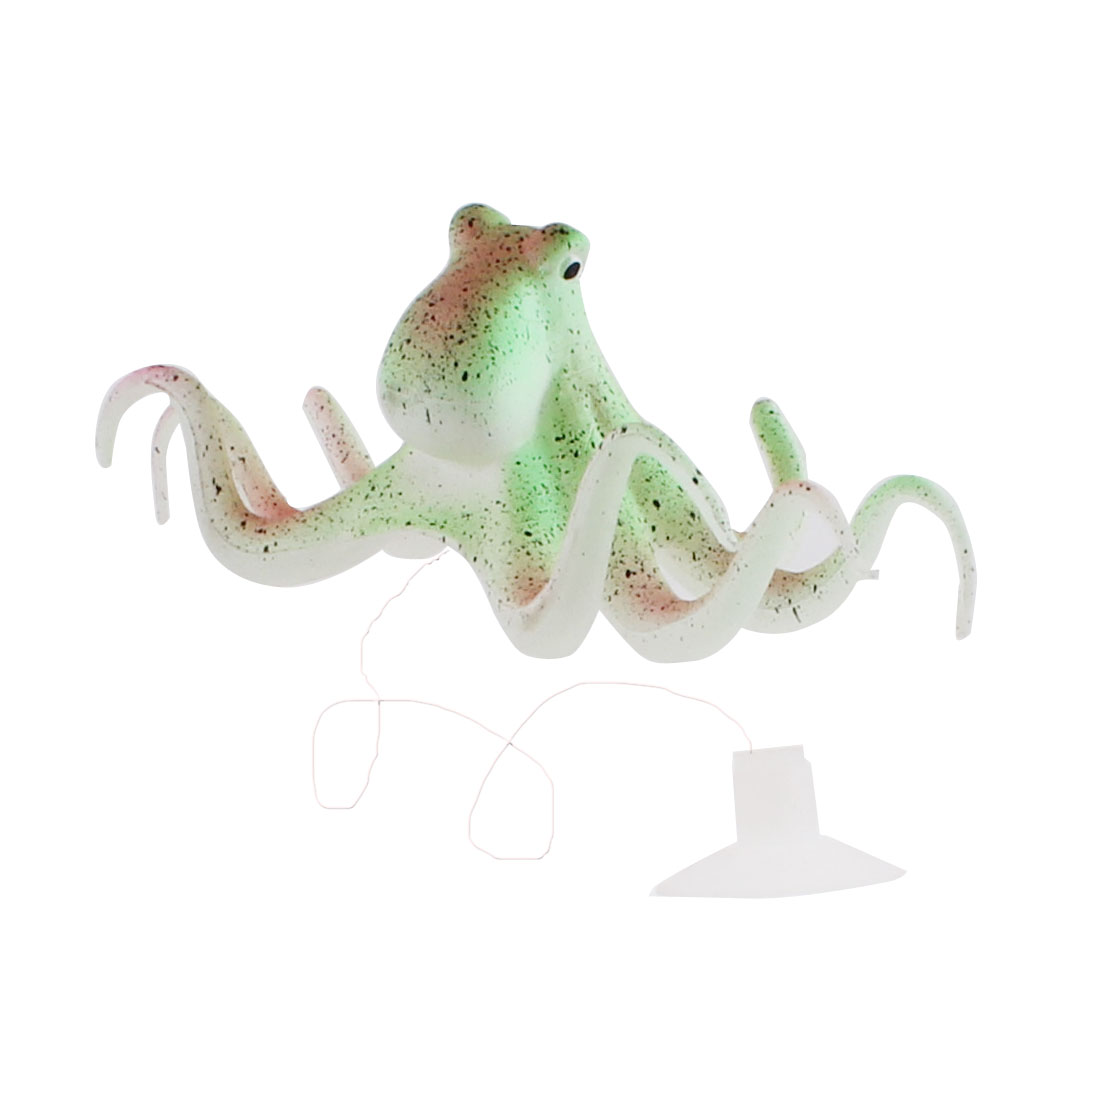 Silicone Emulation Aquarium Fish Tank Suction Cup Octopus Ornament Multicolor